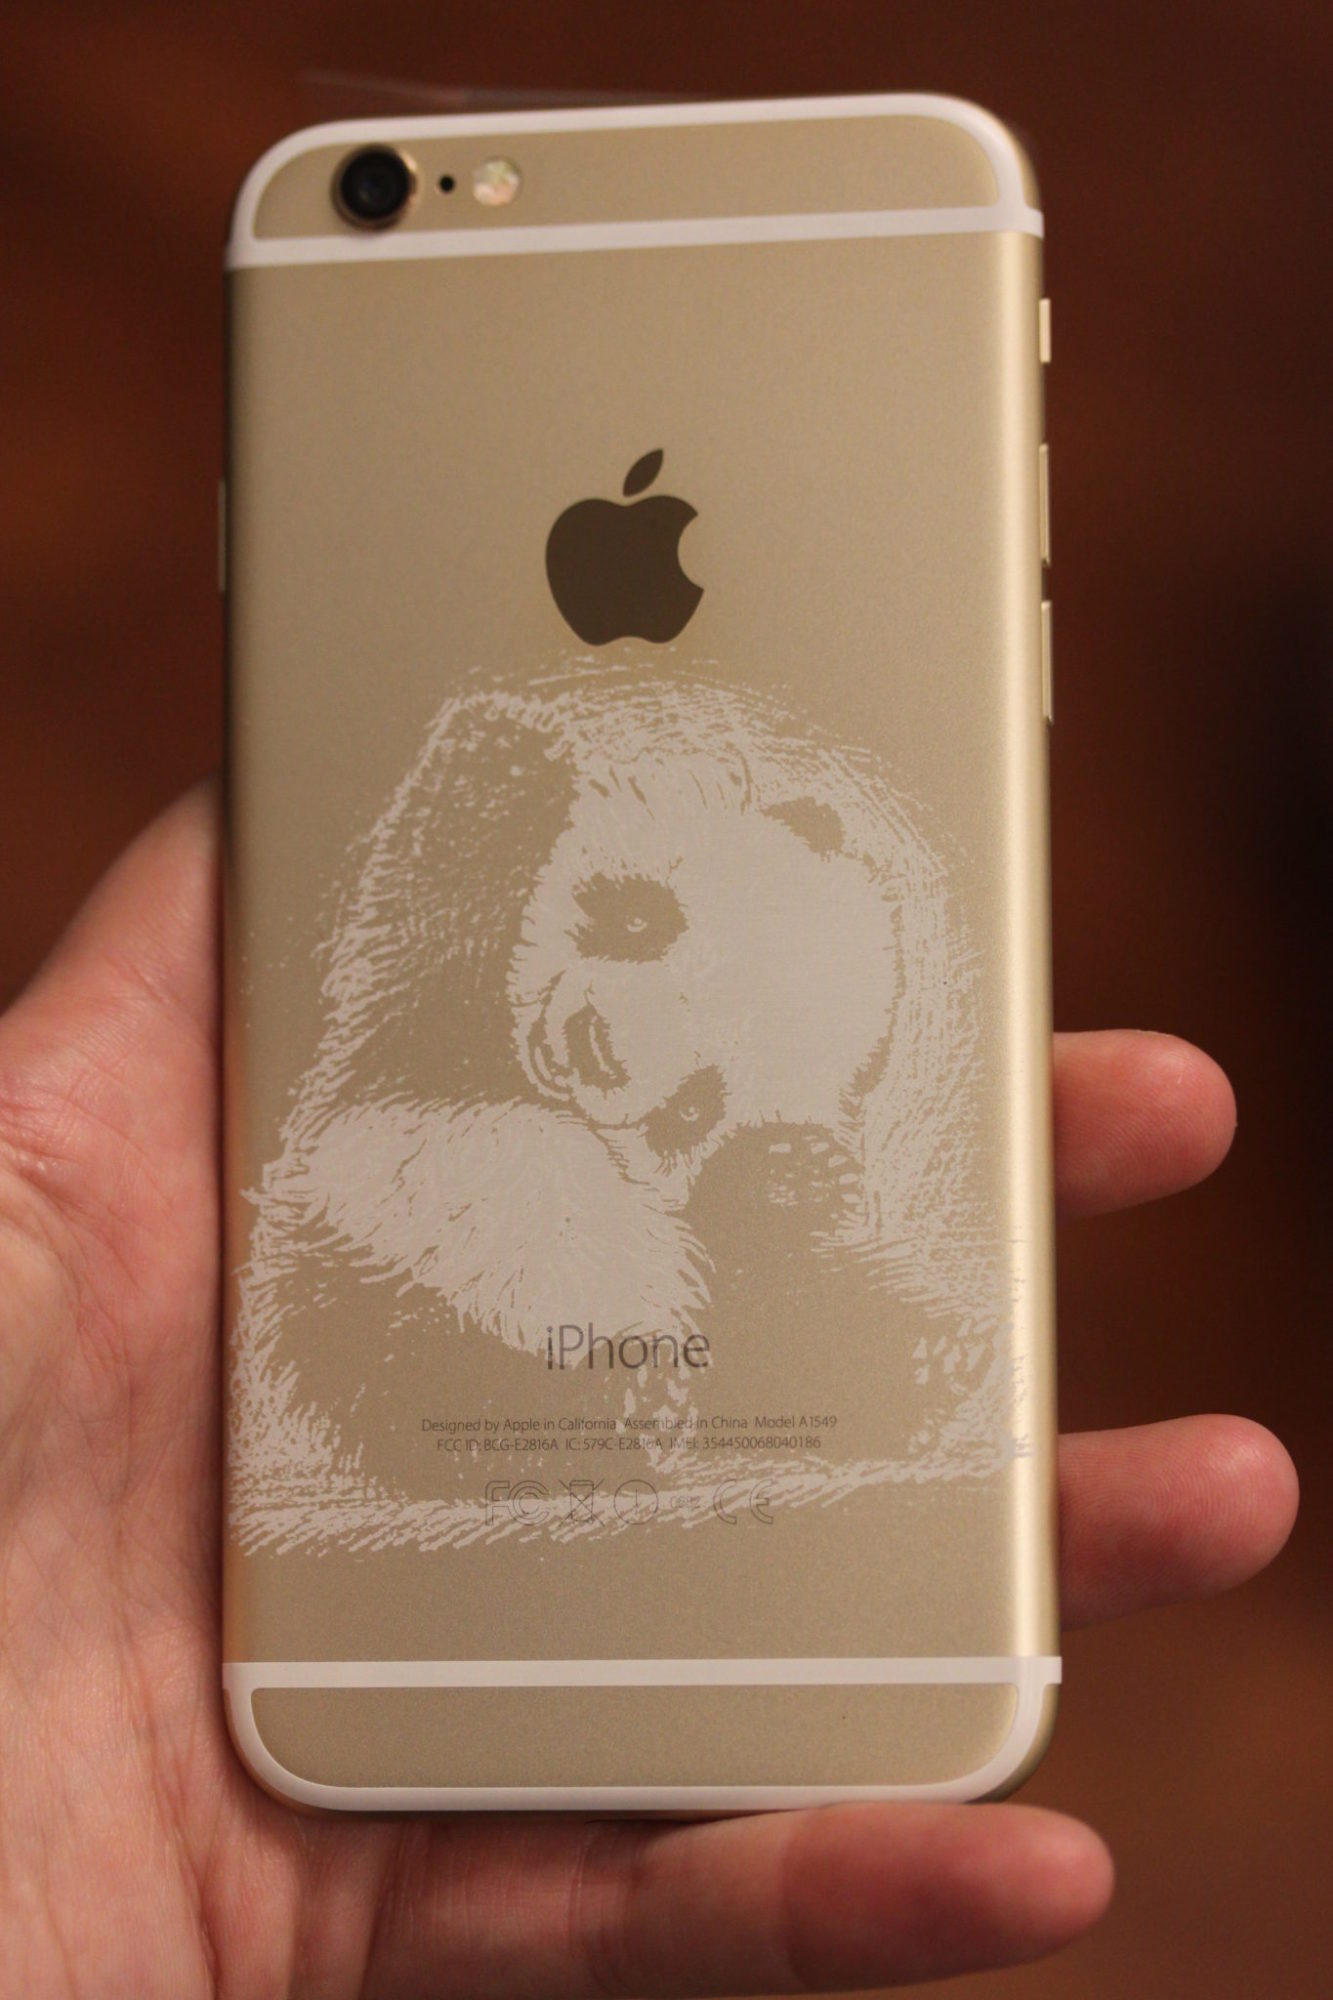 Engraving Apple's Gold iPads, iPhones, and MacBooks 3